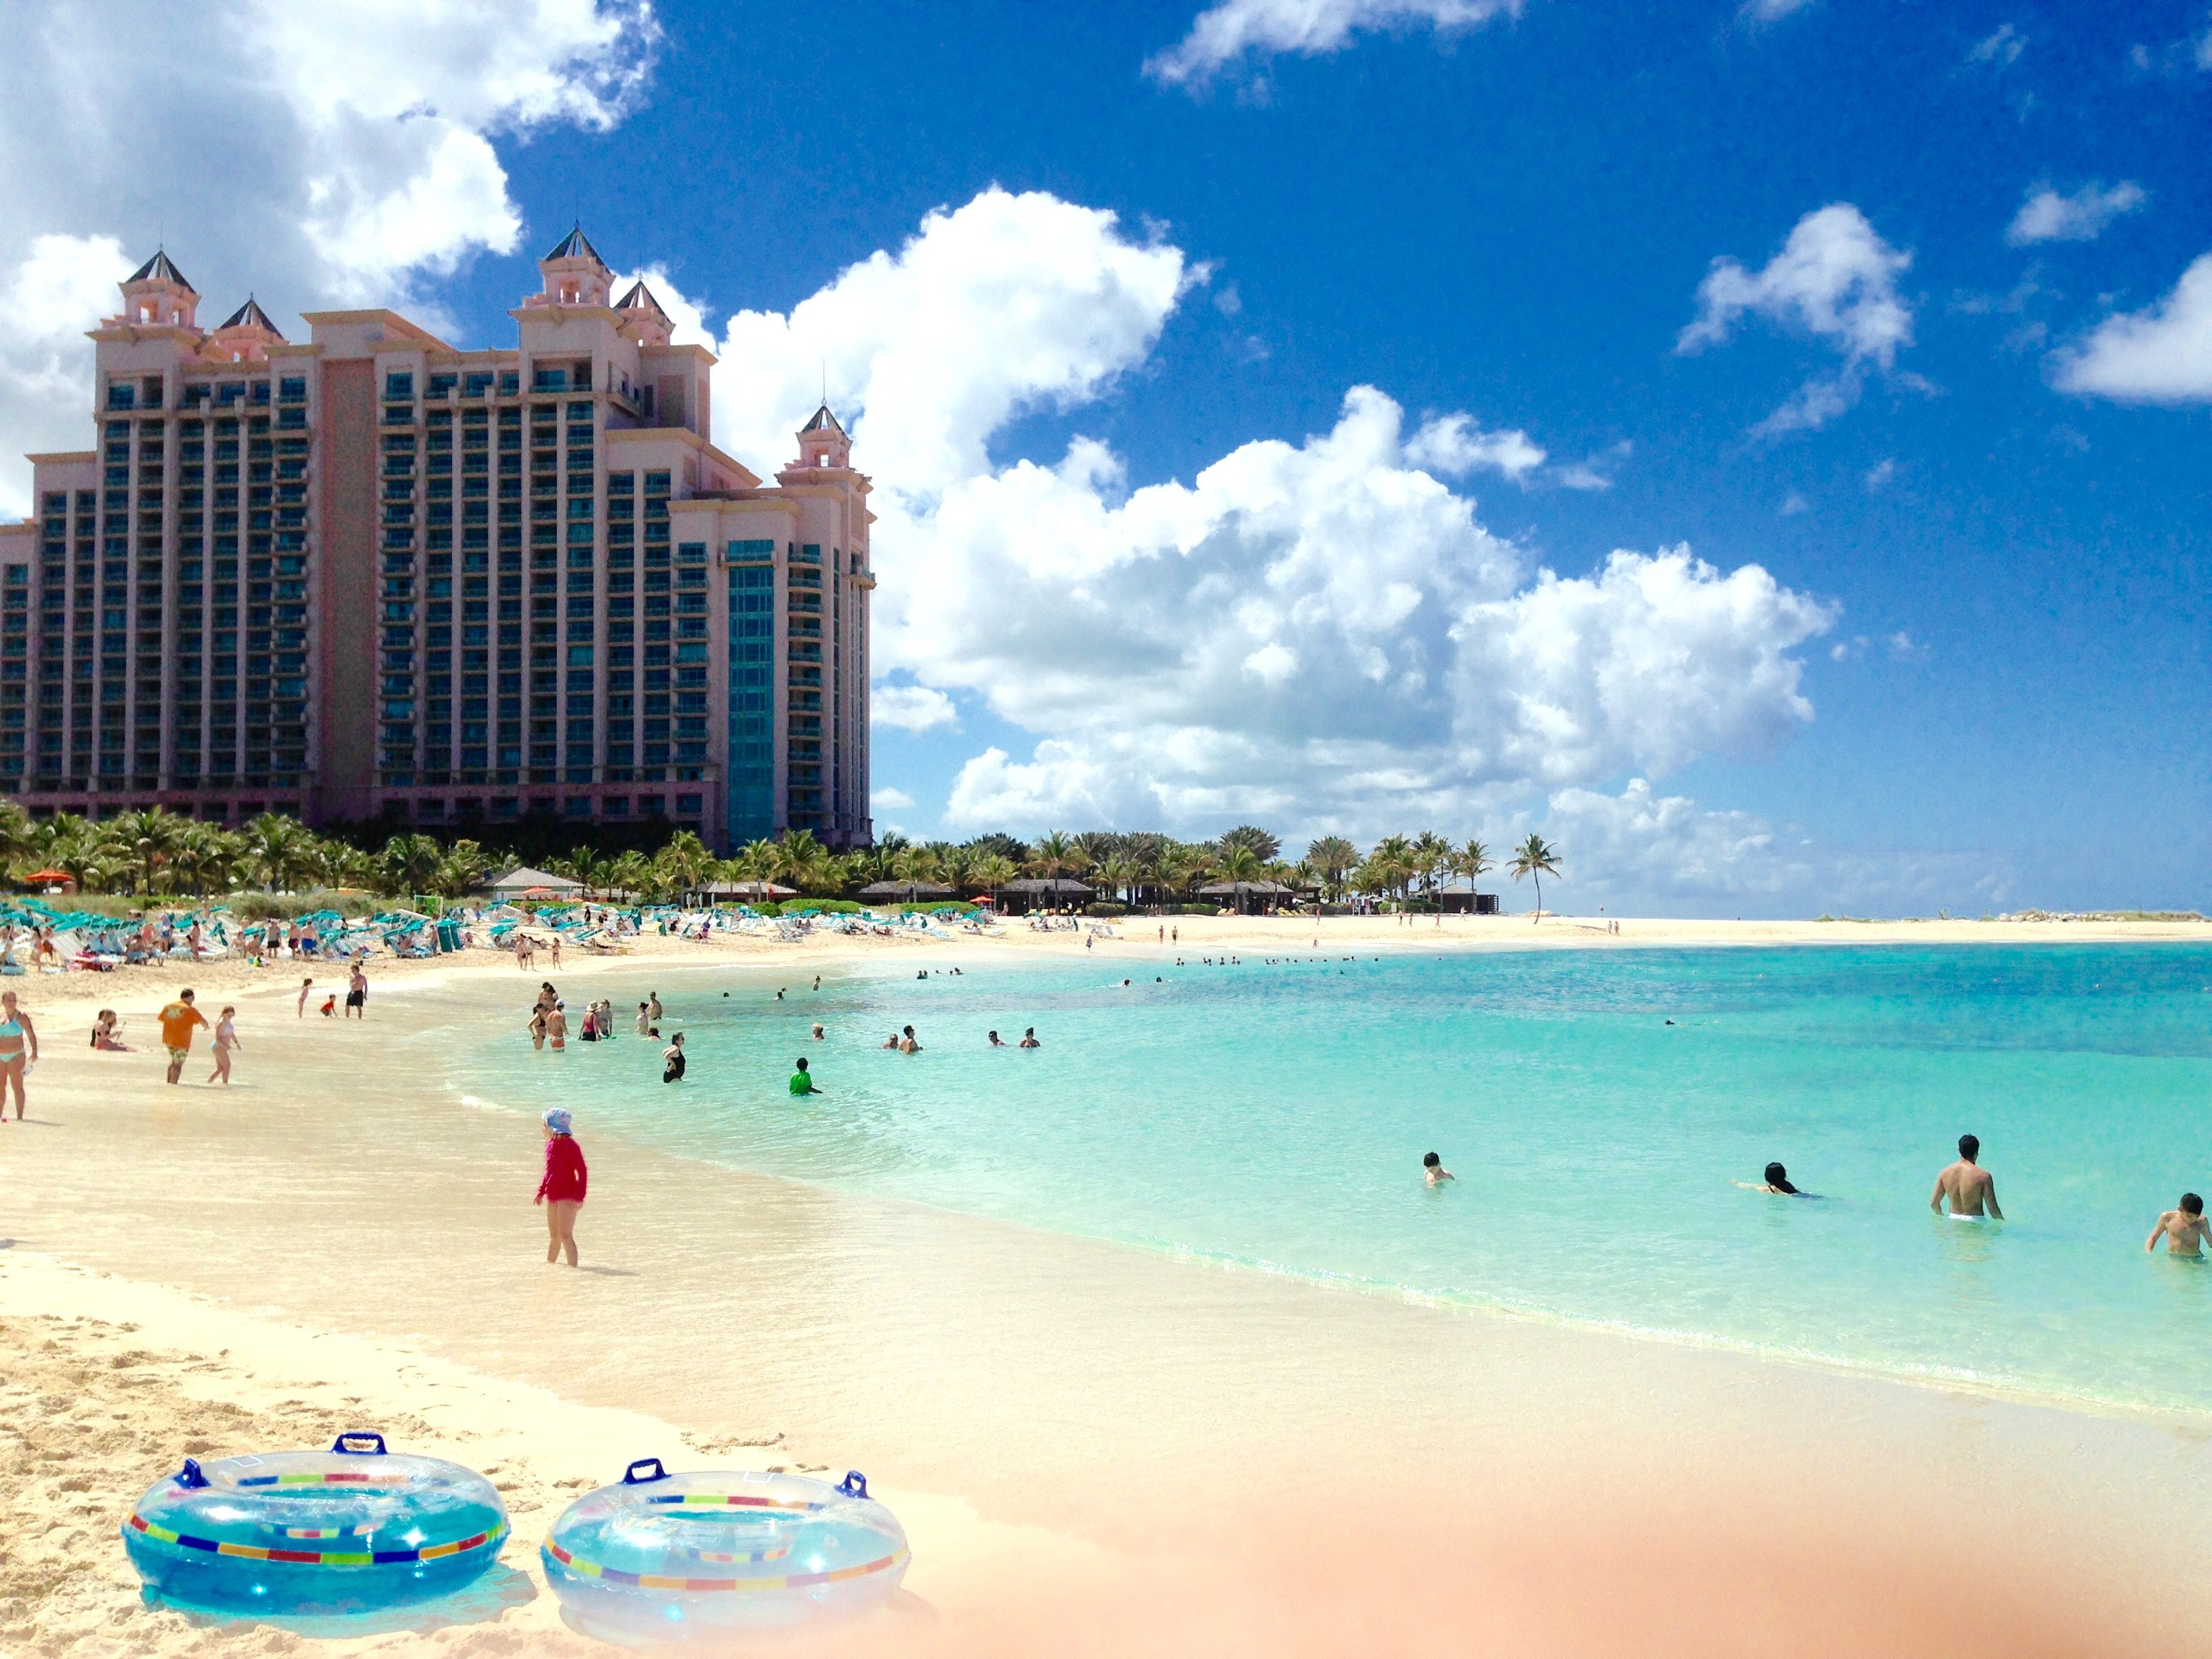 Atlantis Bahamas Cove Beach With